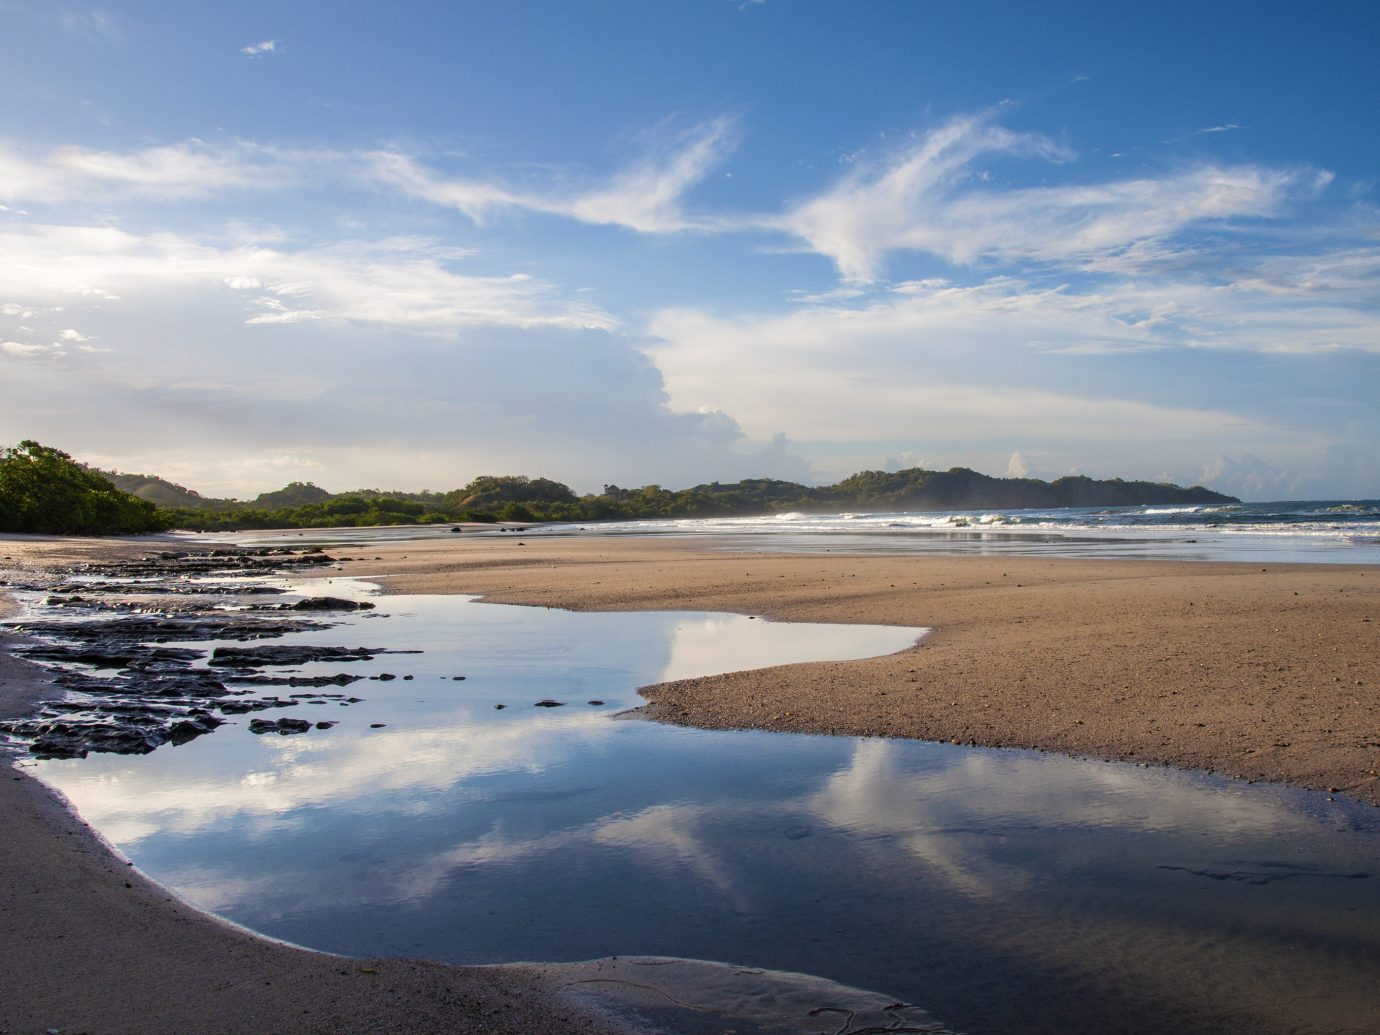 Beach on the Nicoya Peninsula in Costa Rica